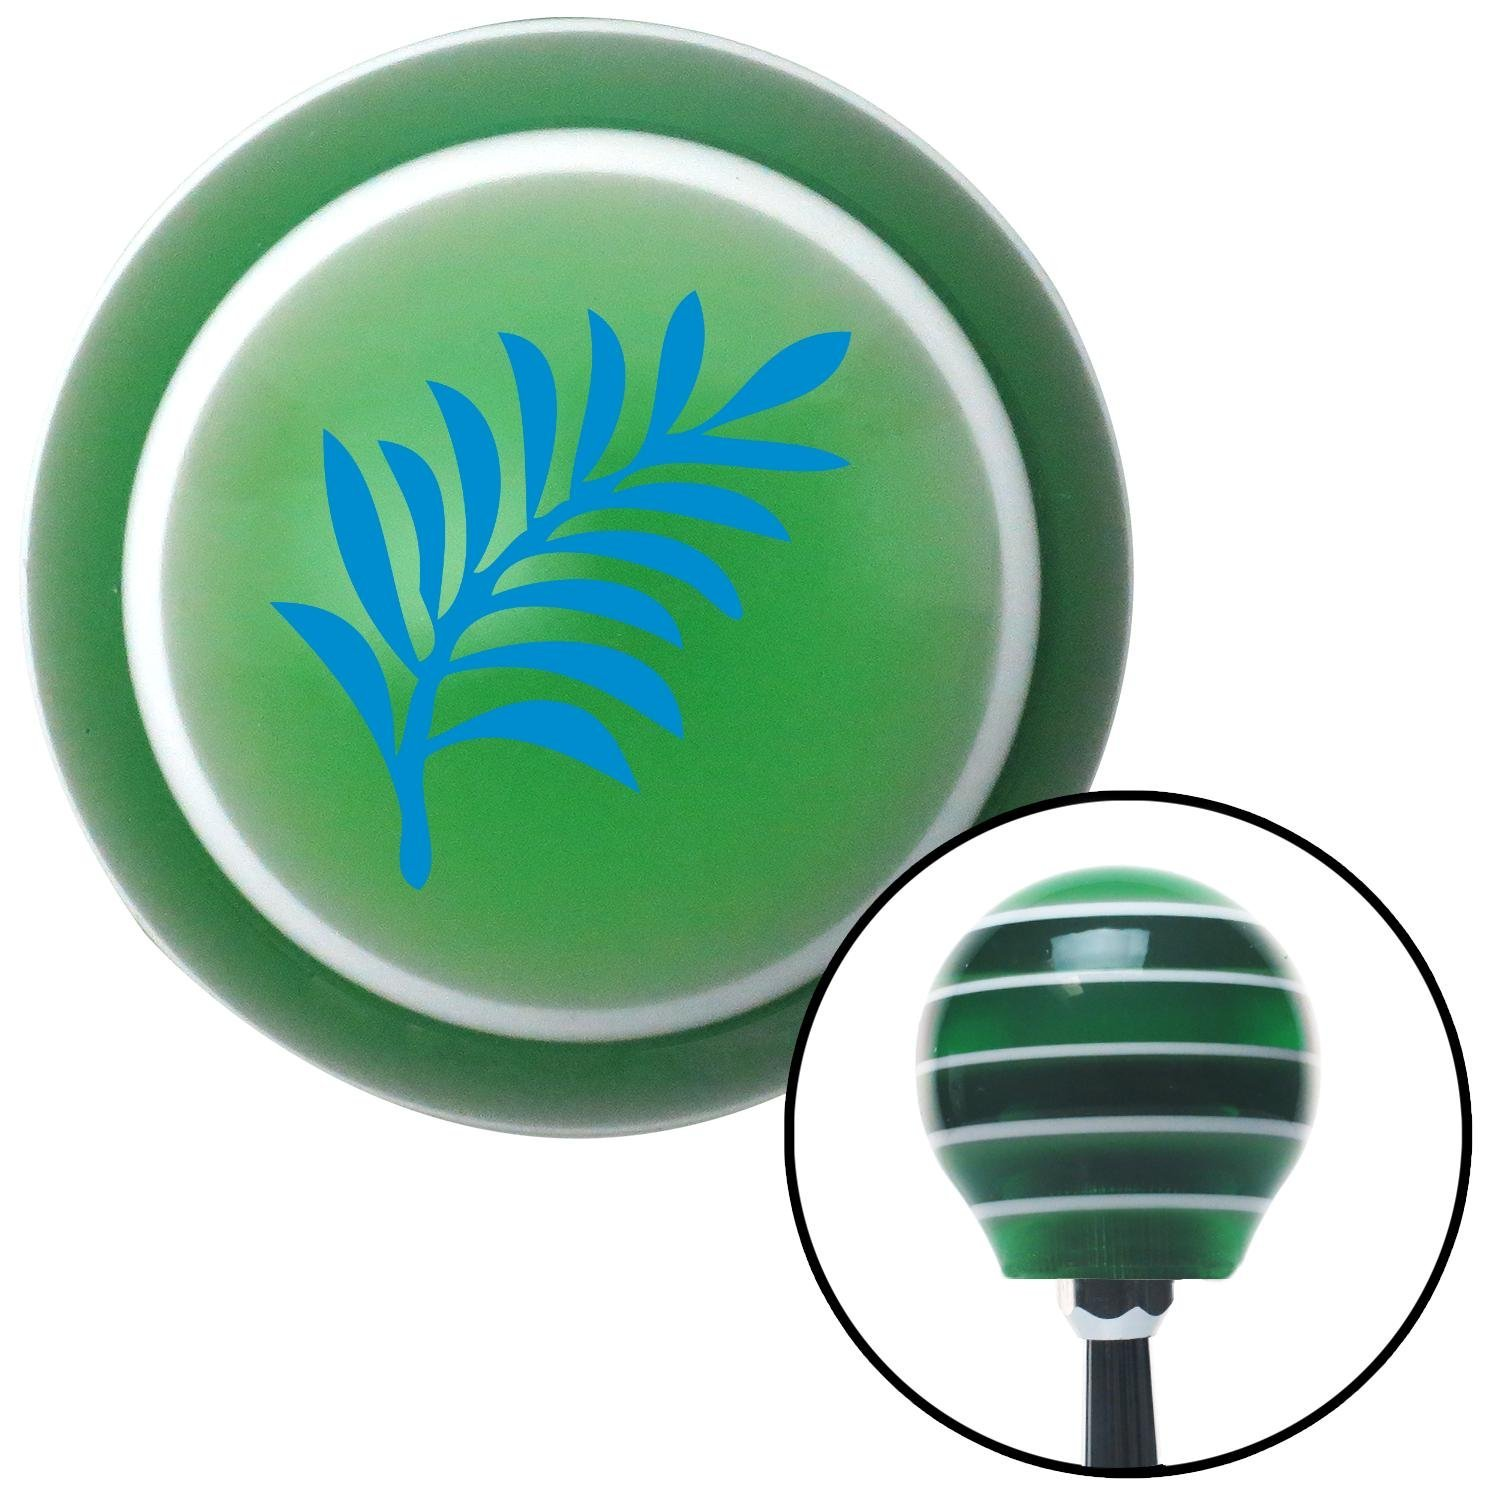 American Shifter 122988 Green Stripe Shift Knob with M16 x 1.5 Insert Blue Hawaiian Leaf #3